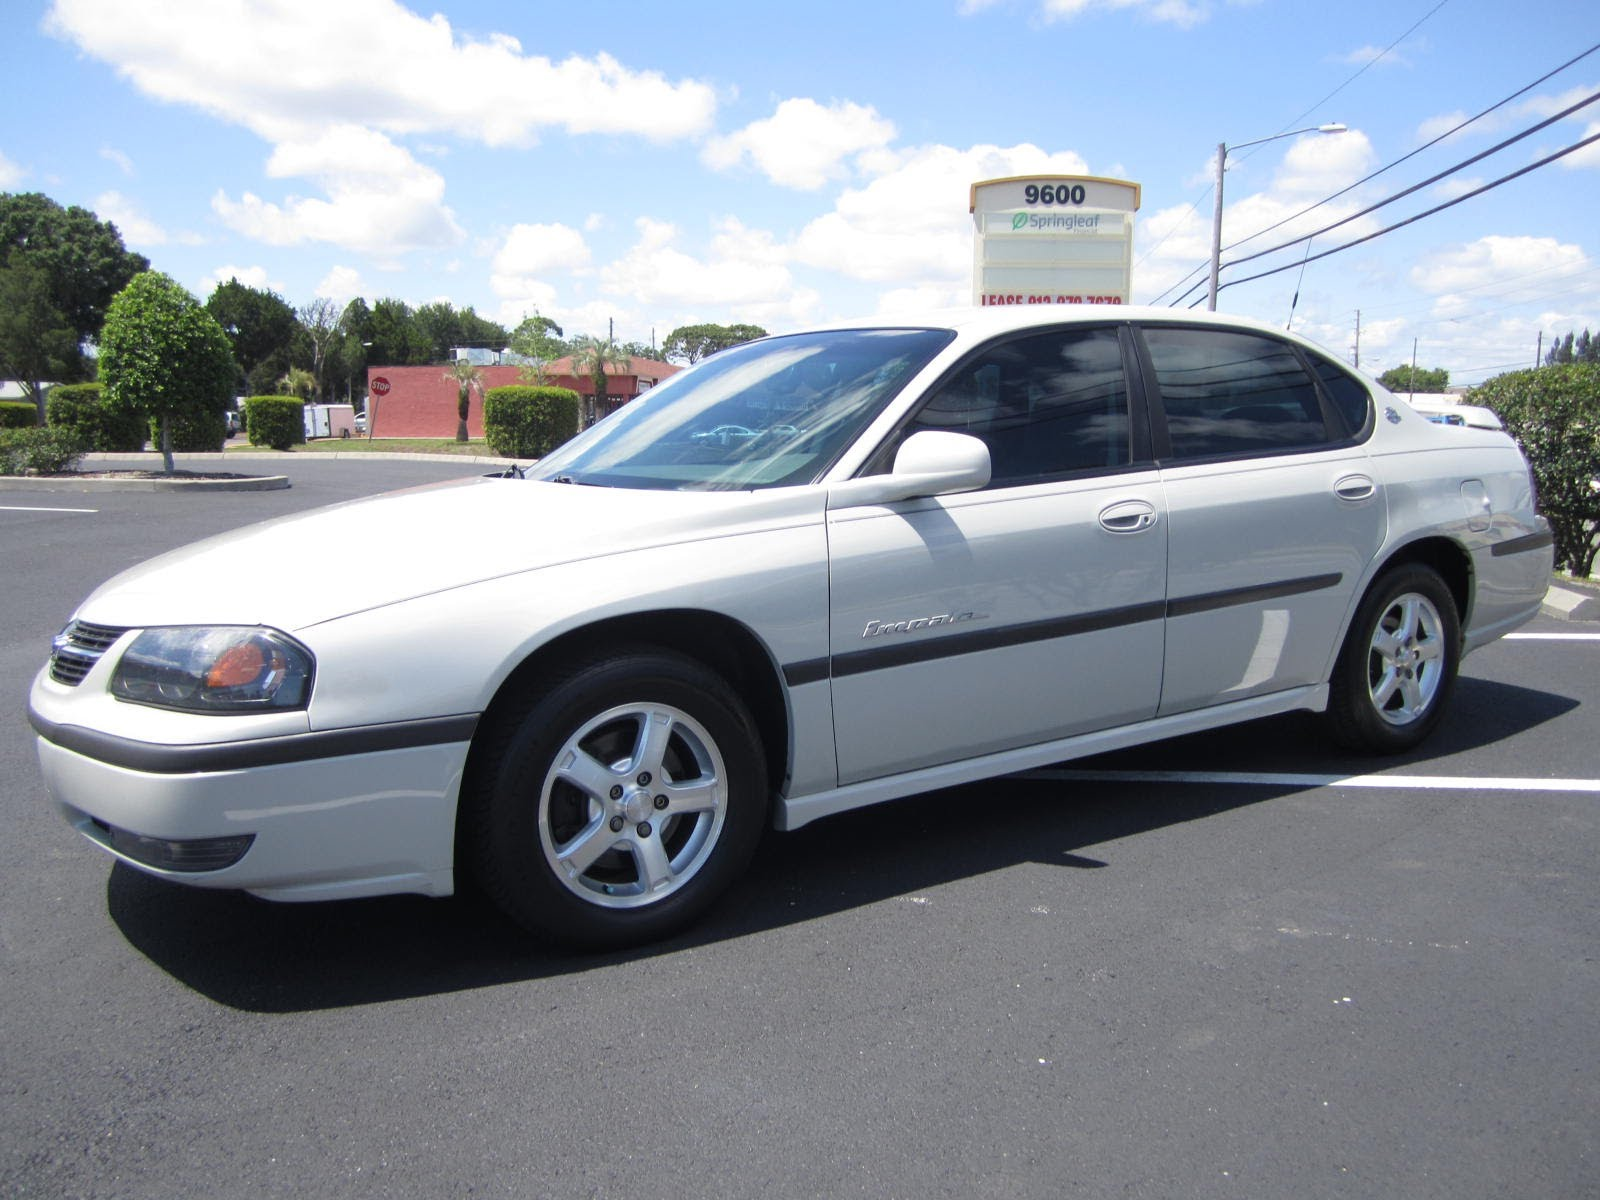 chevrolet impala (w) 2003 pictures